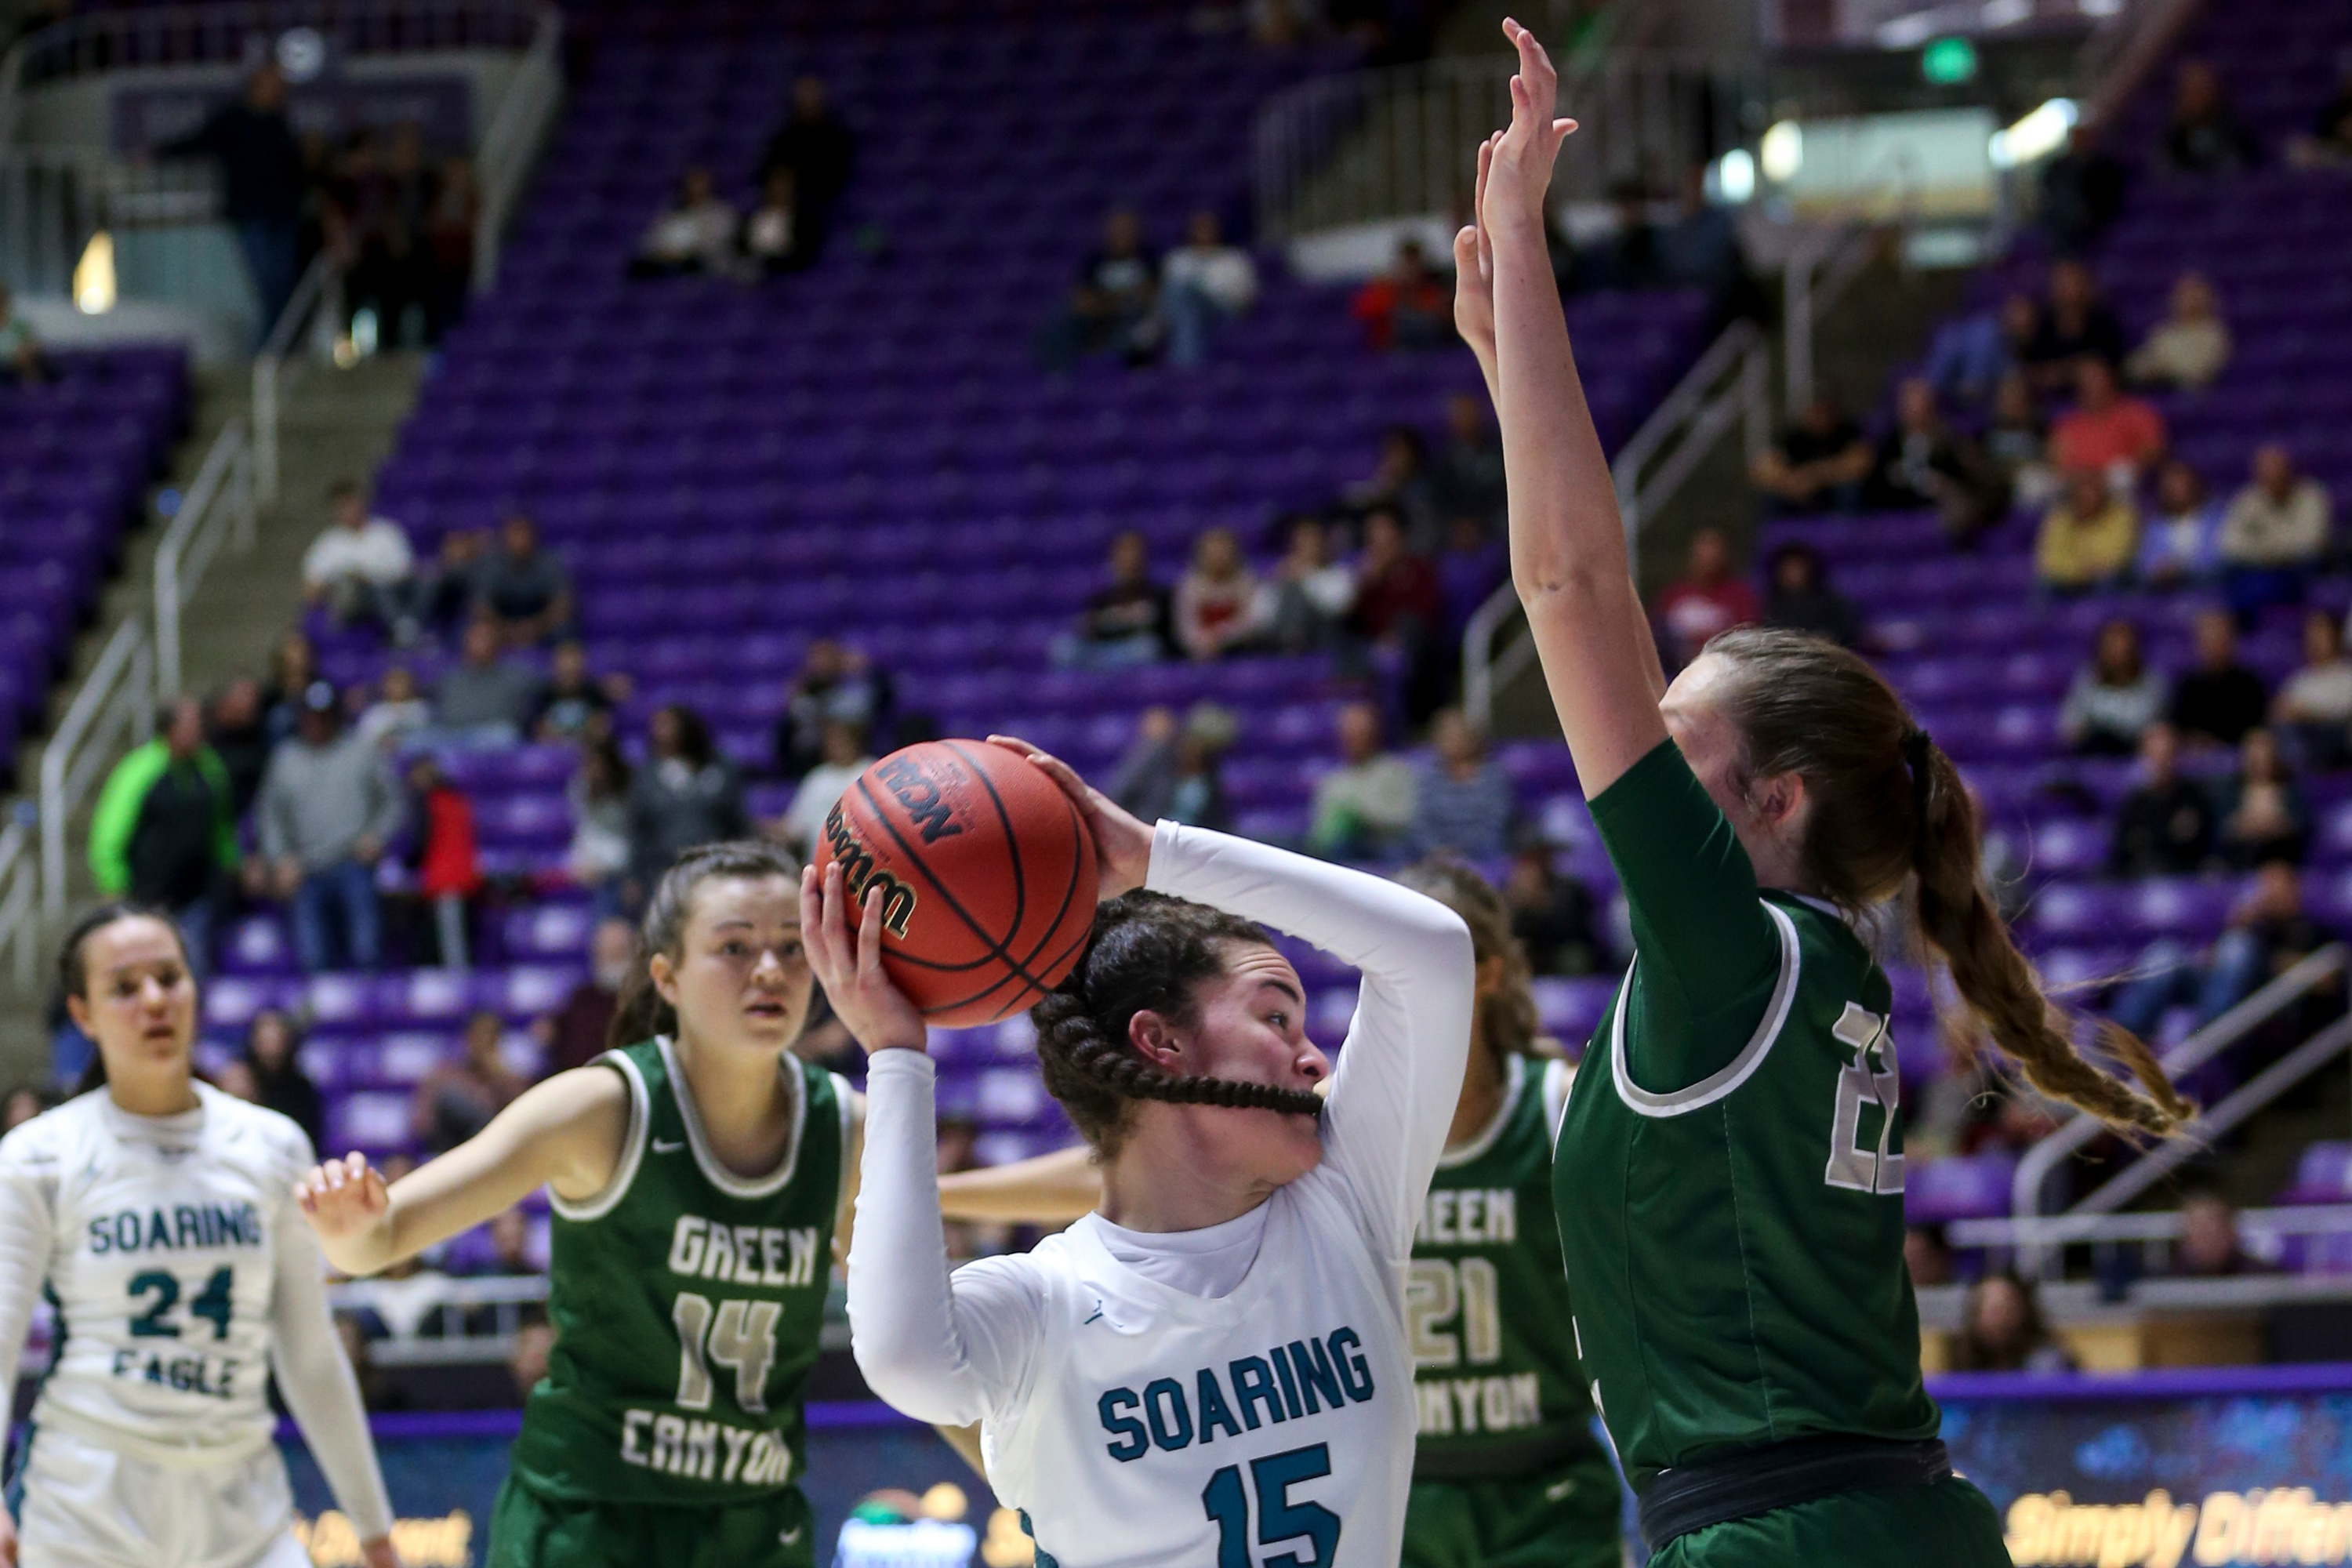 Green Canyon beats Juan Diego during the 4A girls quarterfinal basketball game at Dee Events Center in Ogden on Thursday, Feb. 27, 2020.